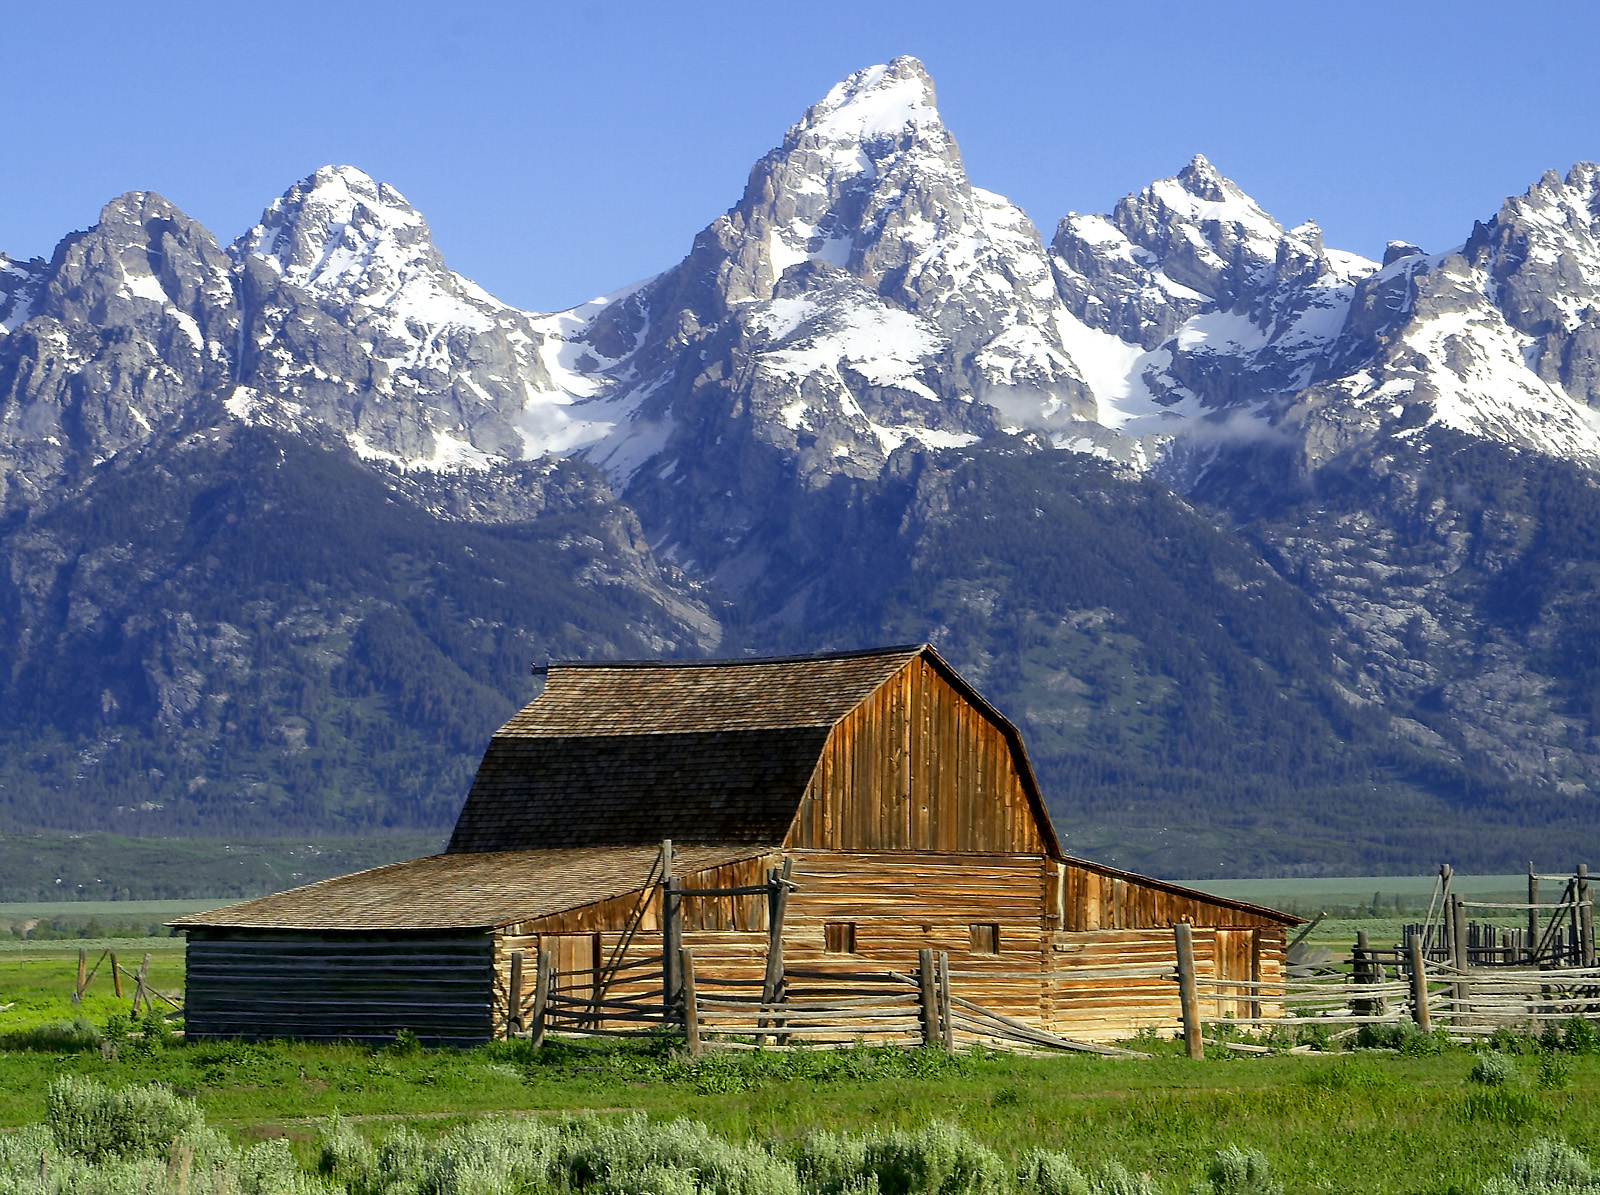 A Day with GG in: Jackson Hole